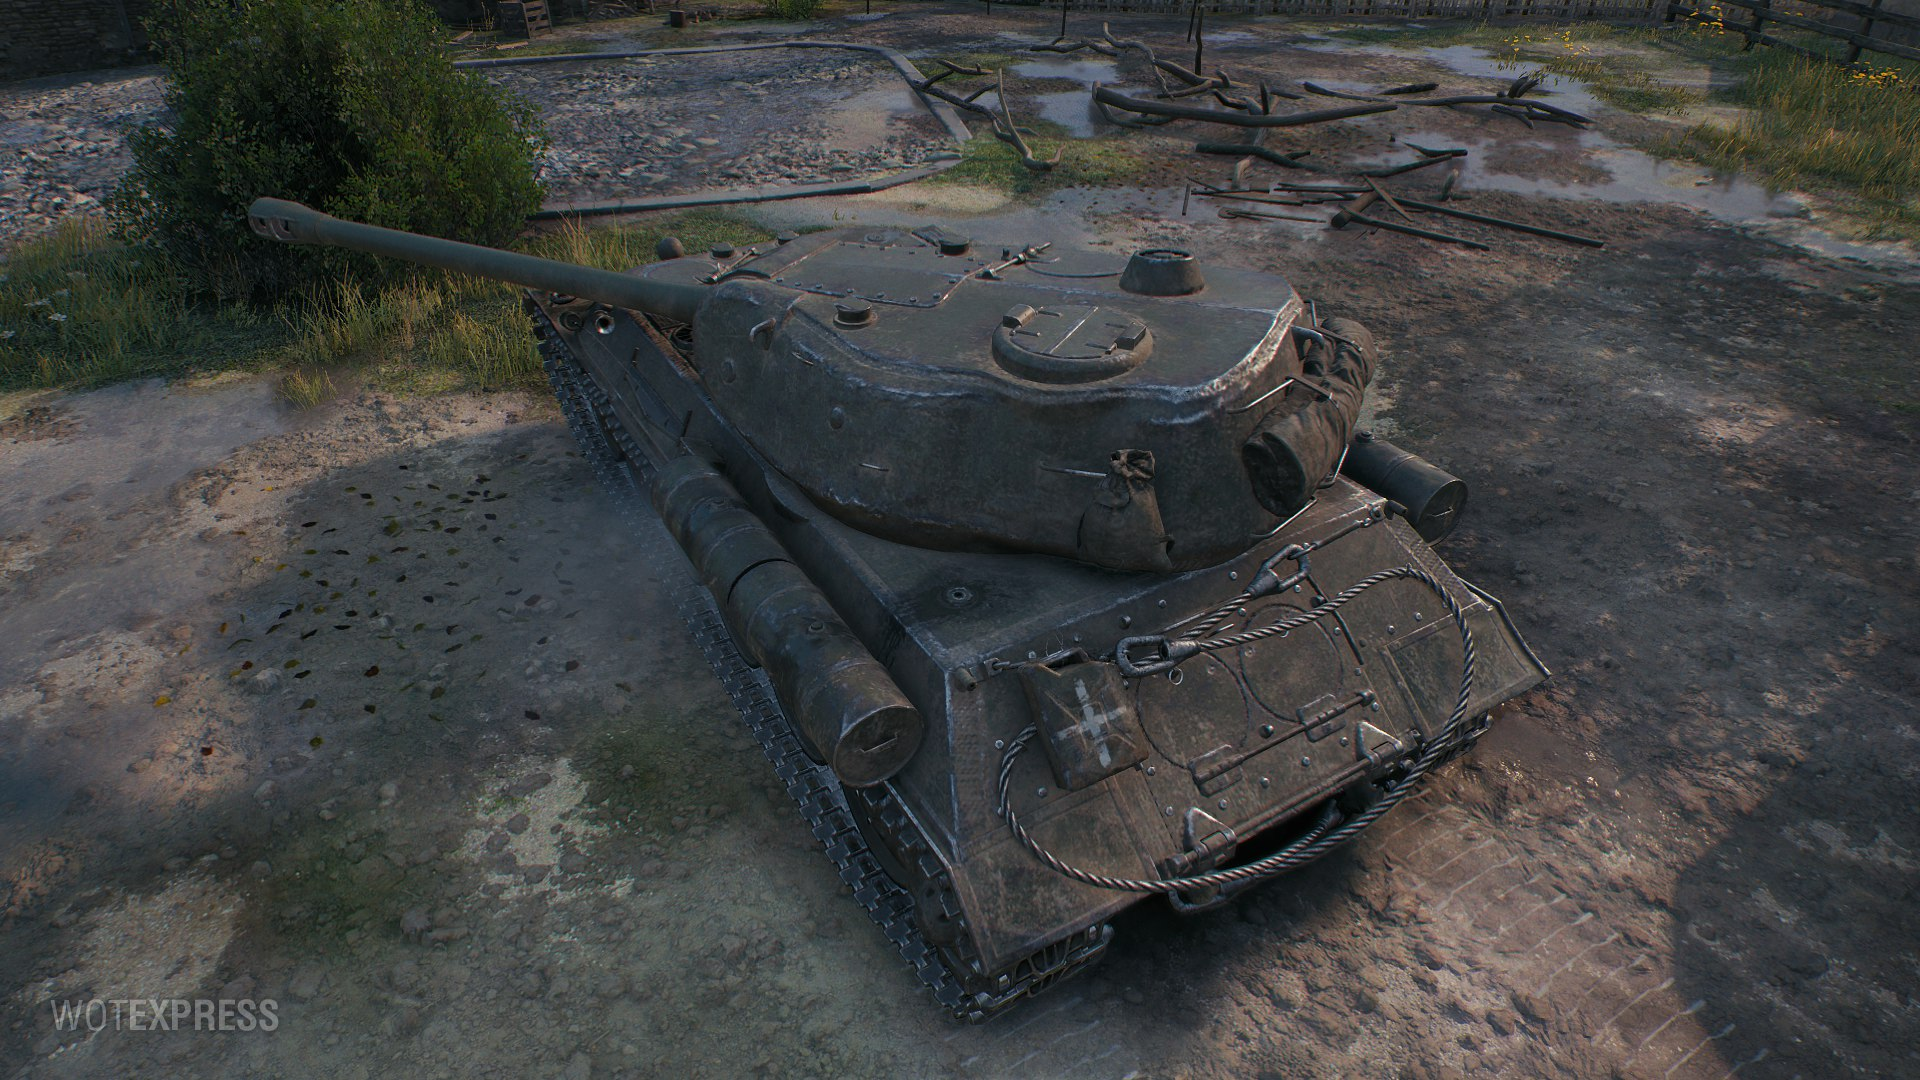 world of tanks update 0.9.22 ussr tech tree